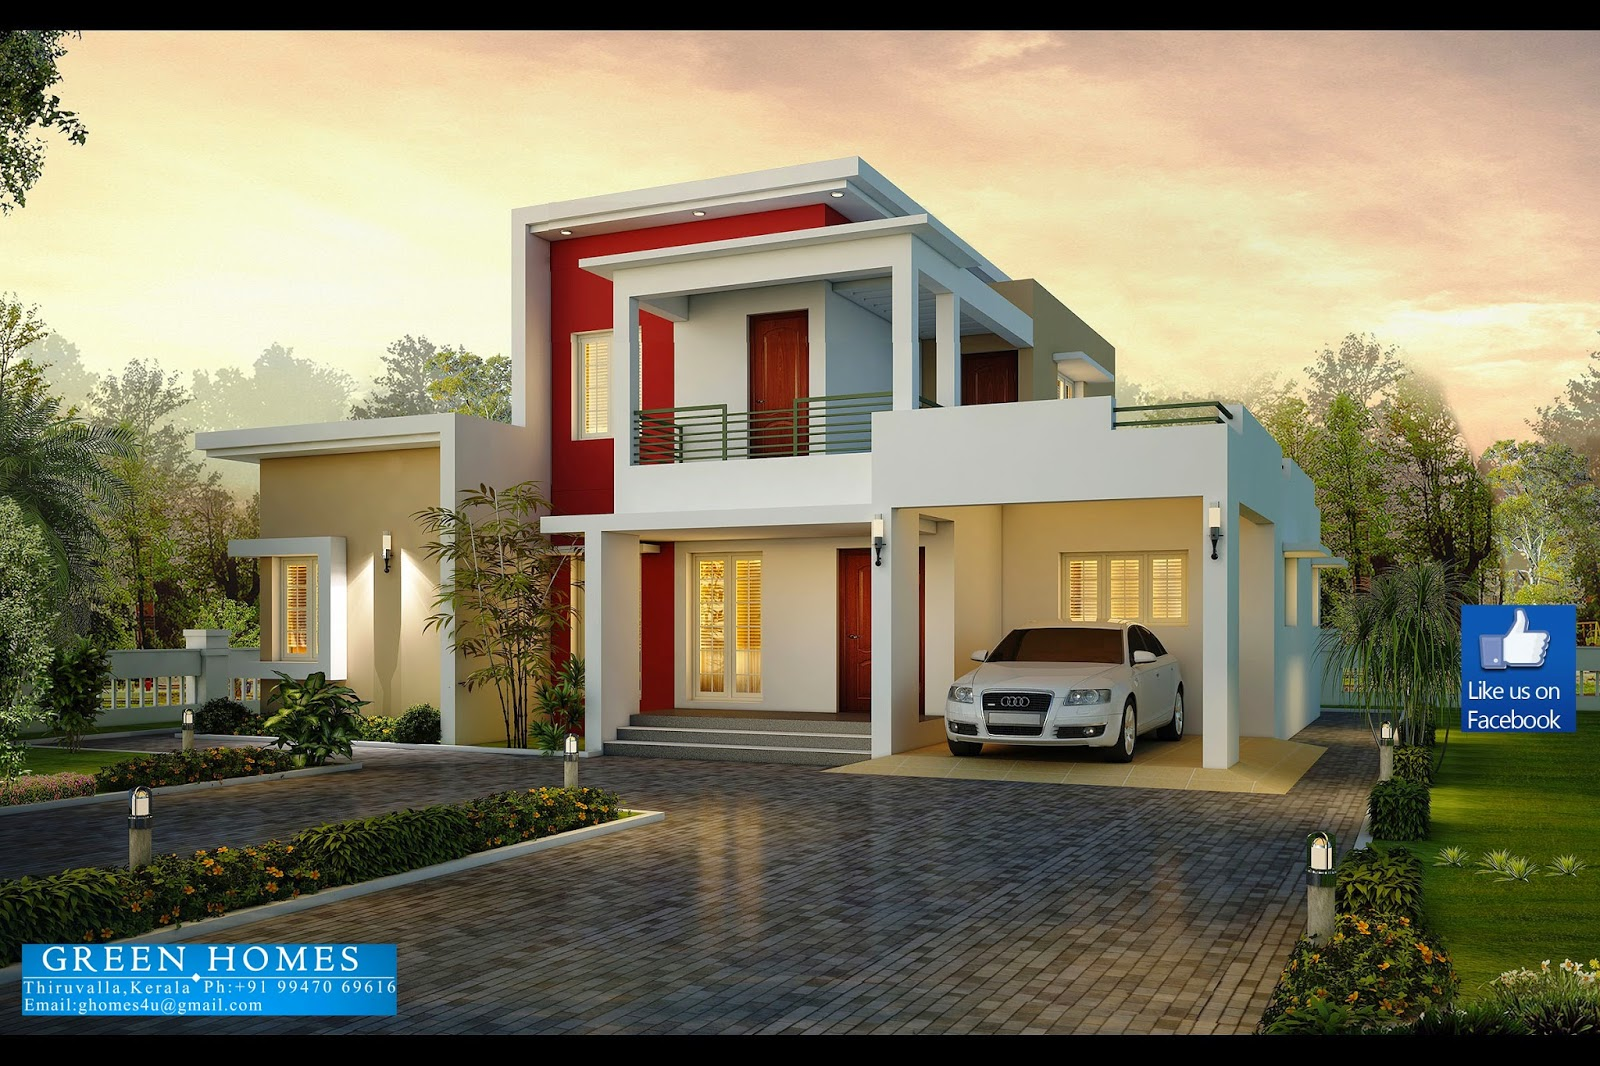 Architecture Design Kerala Model green homes